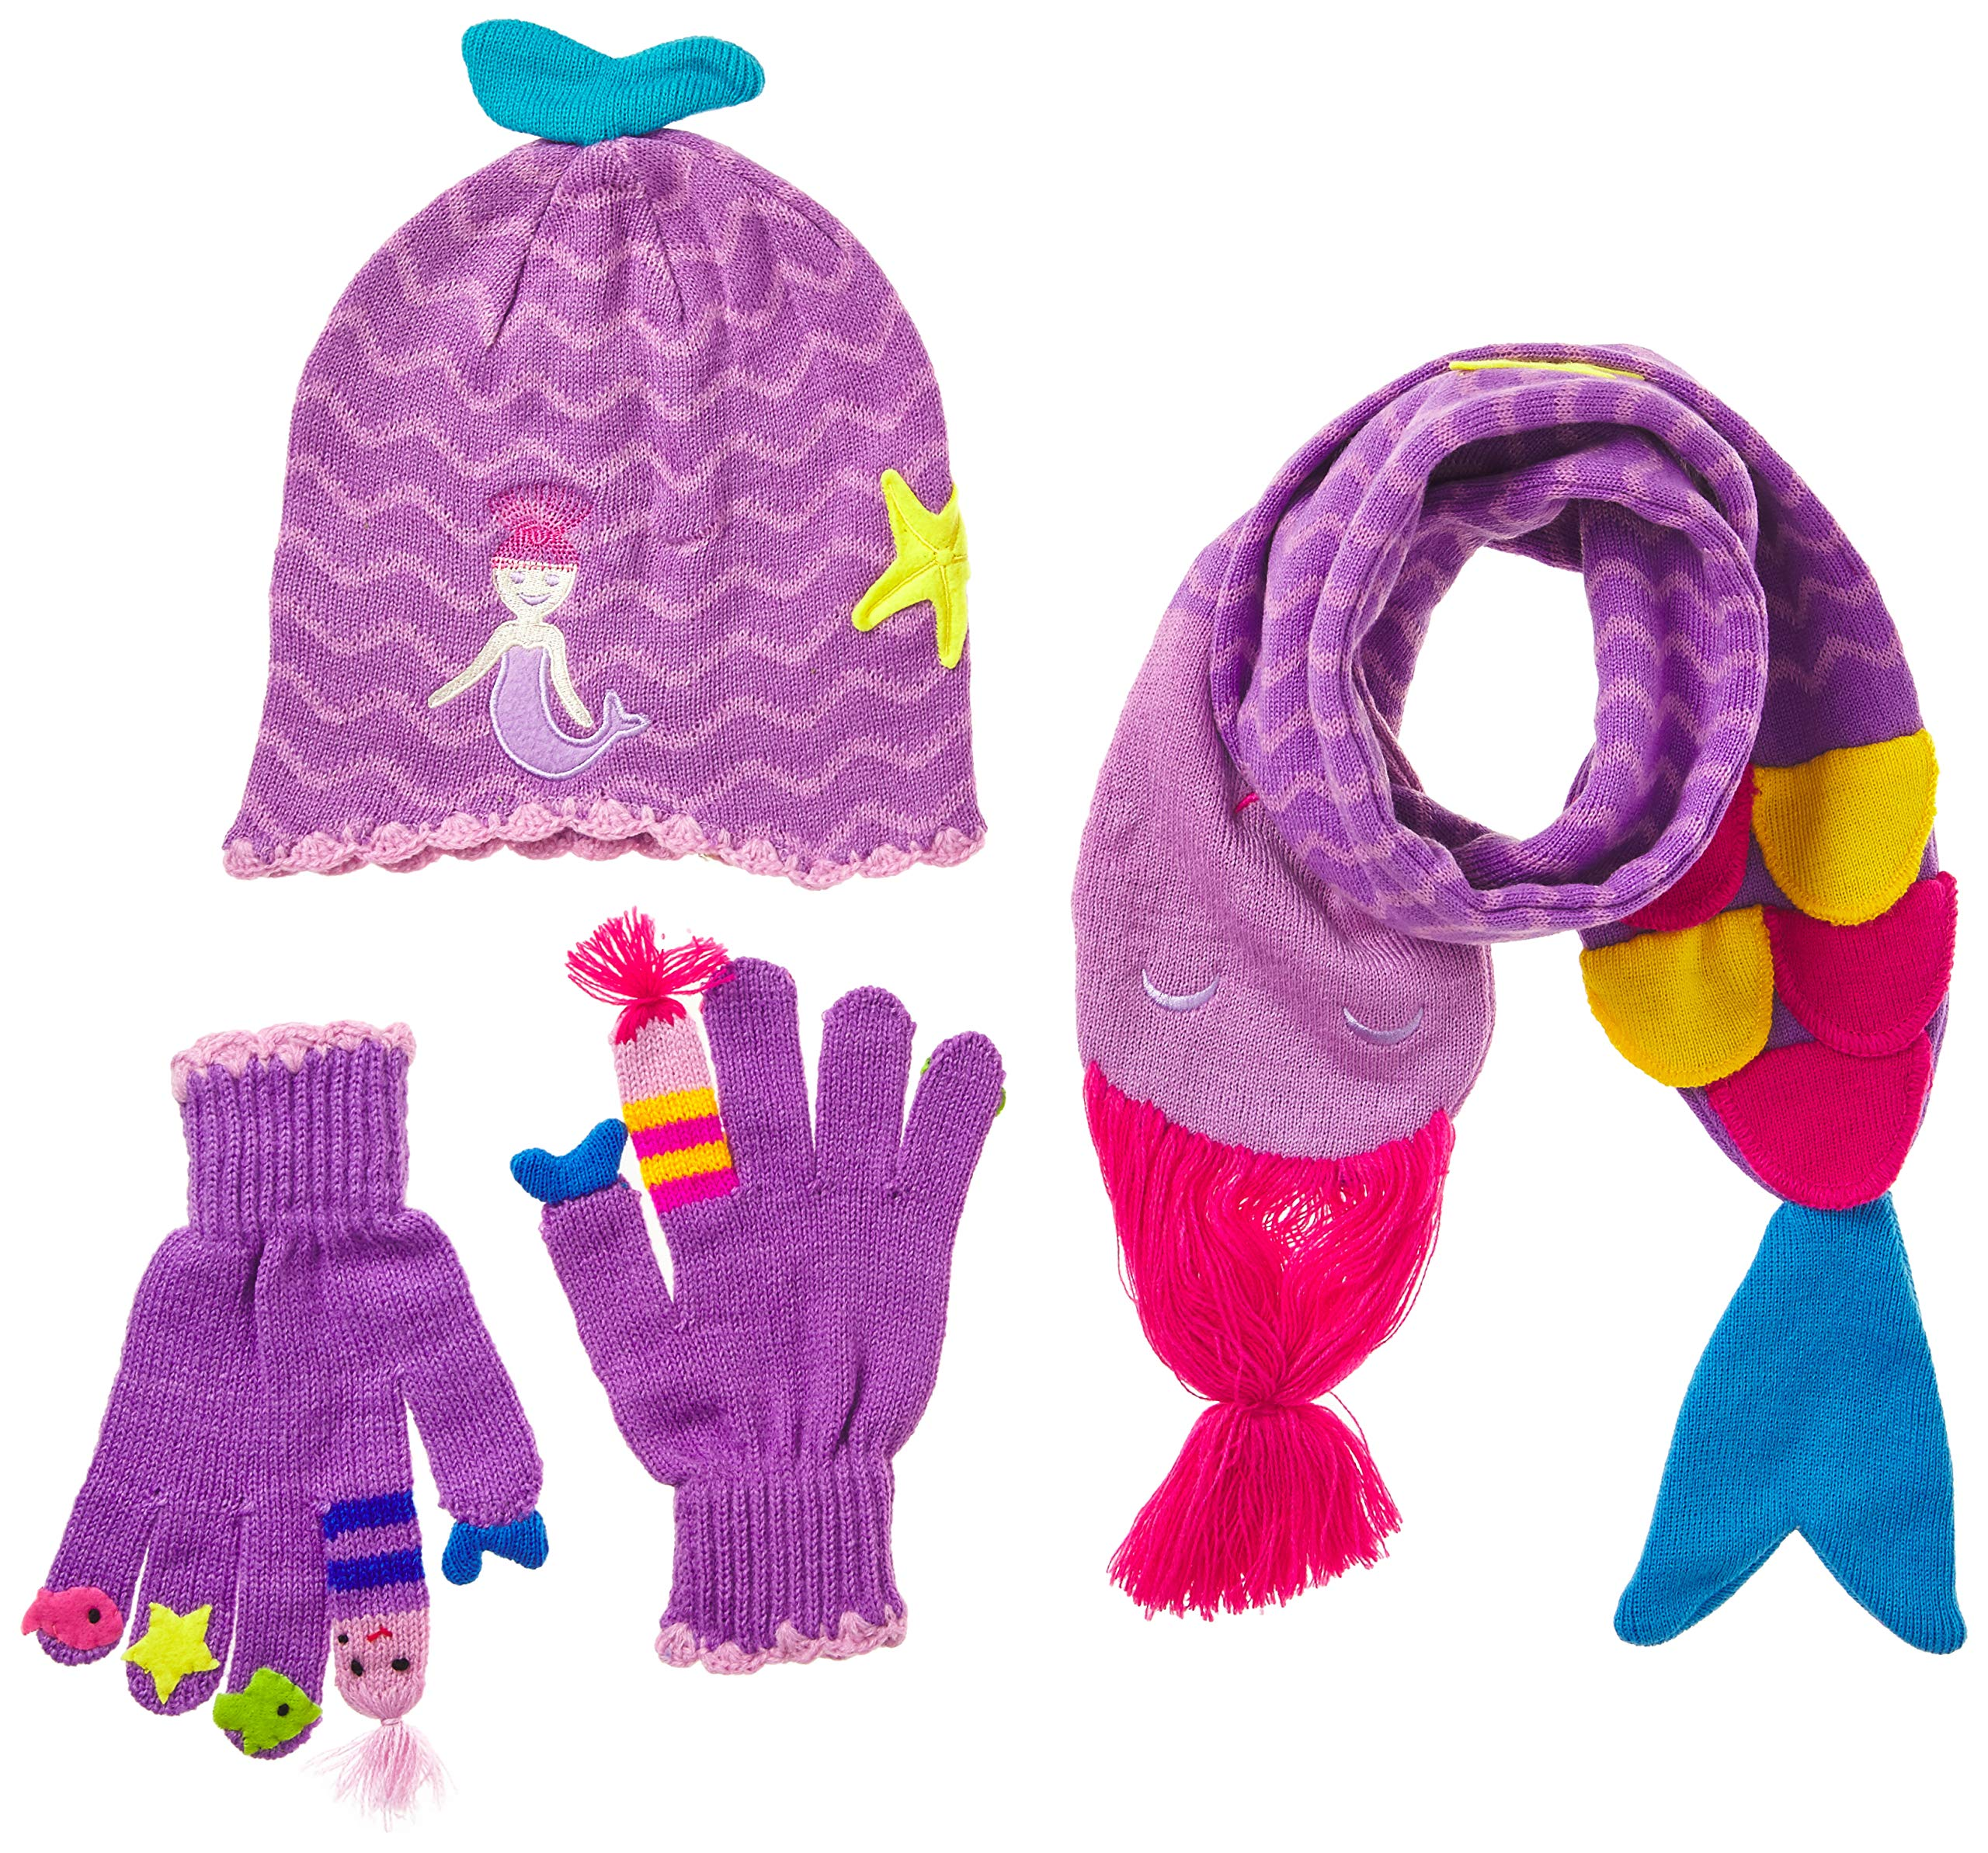 Kidorable Girls' Little Mermaid Hat Scarf Set, Purple, Small by Kidorable (Image #1)